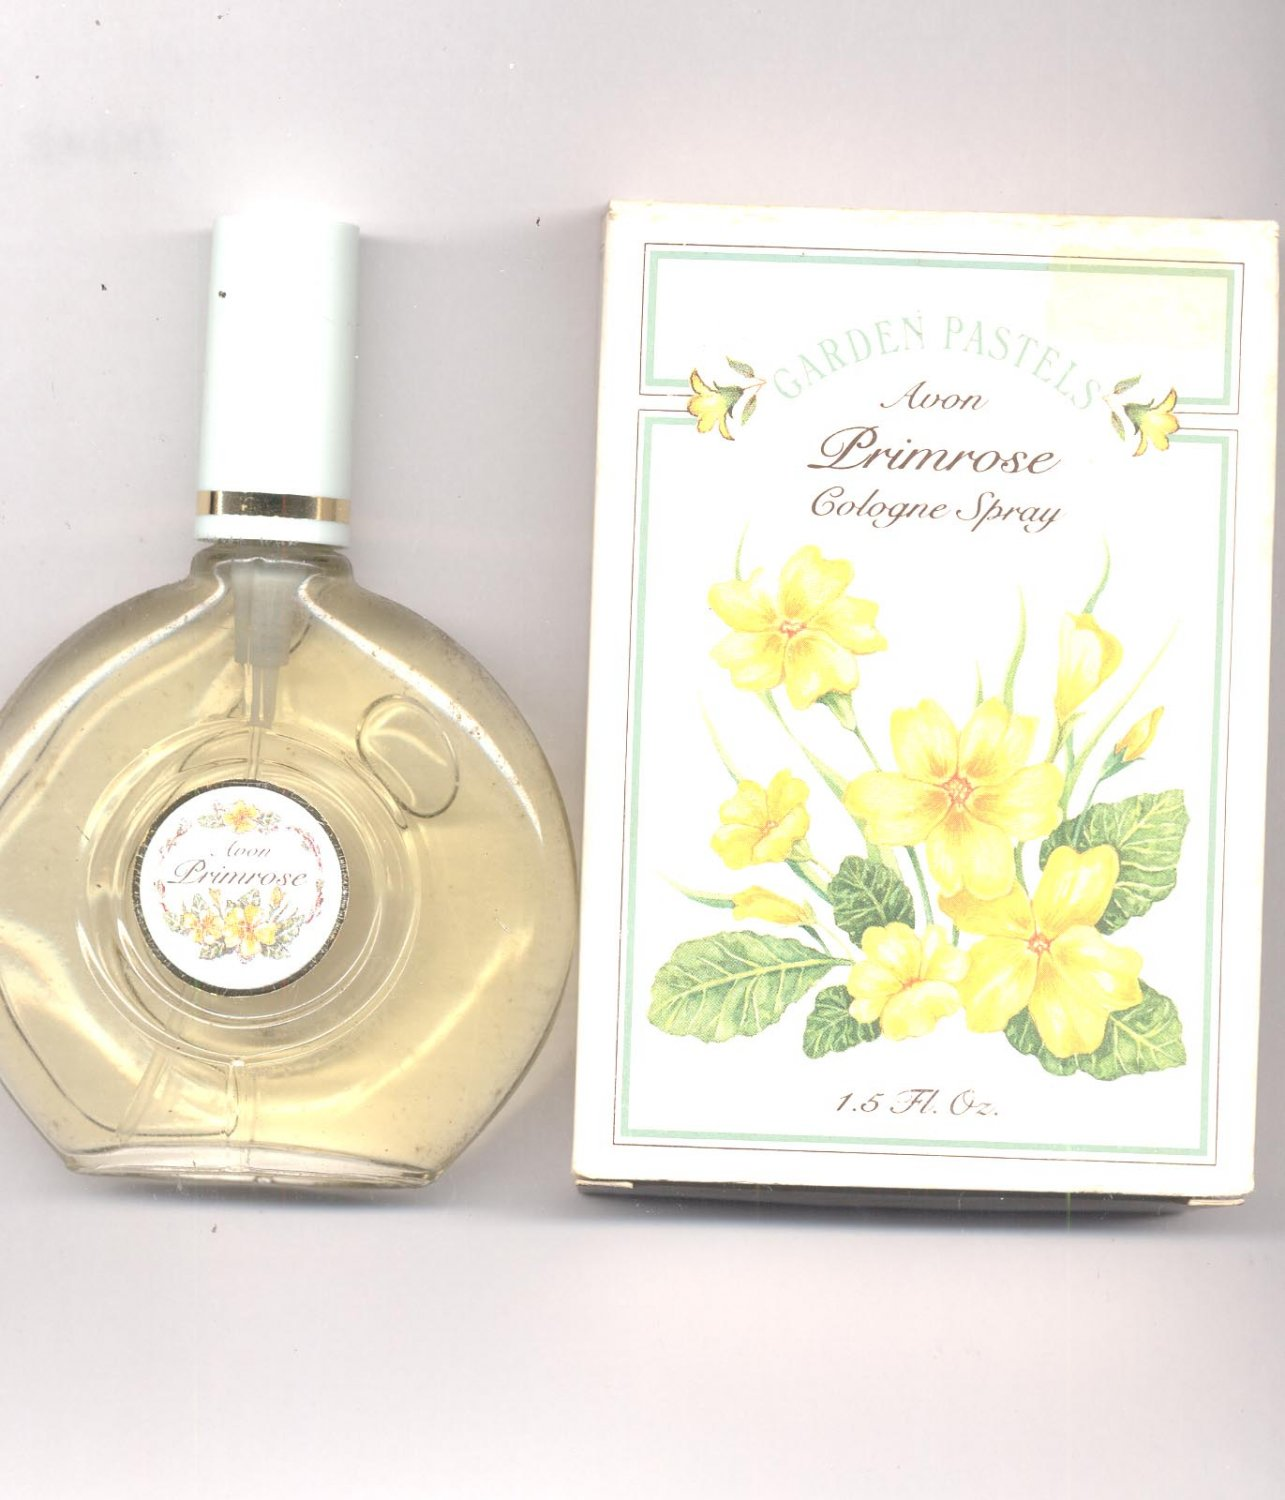 Avon Primrose cologne spray- NOS